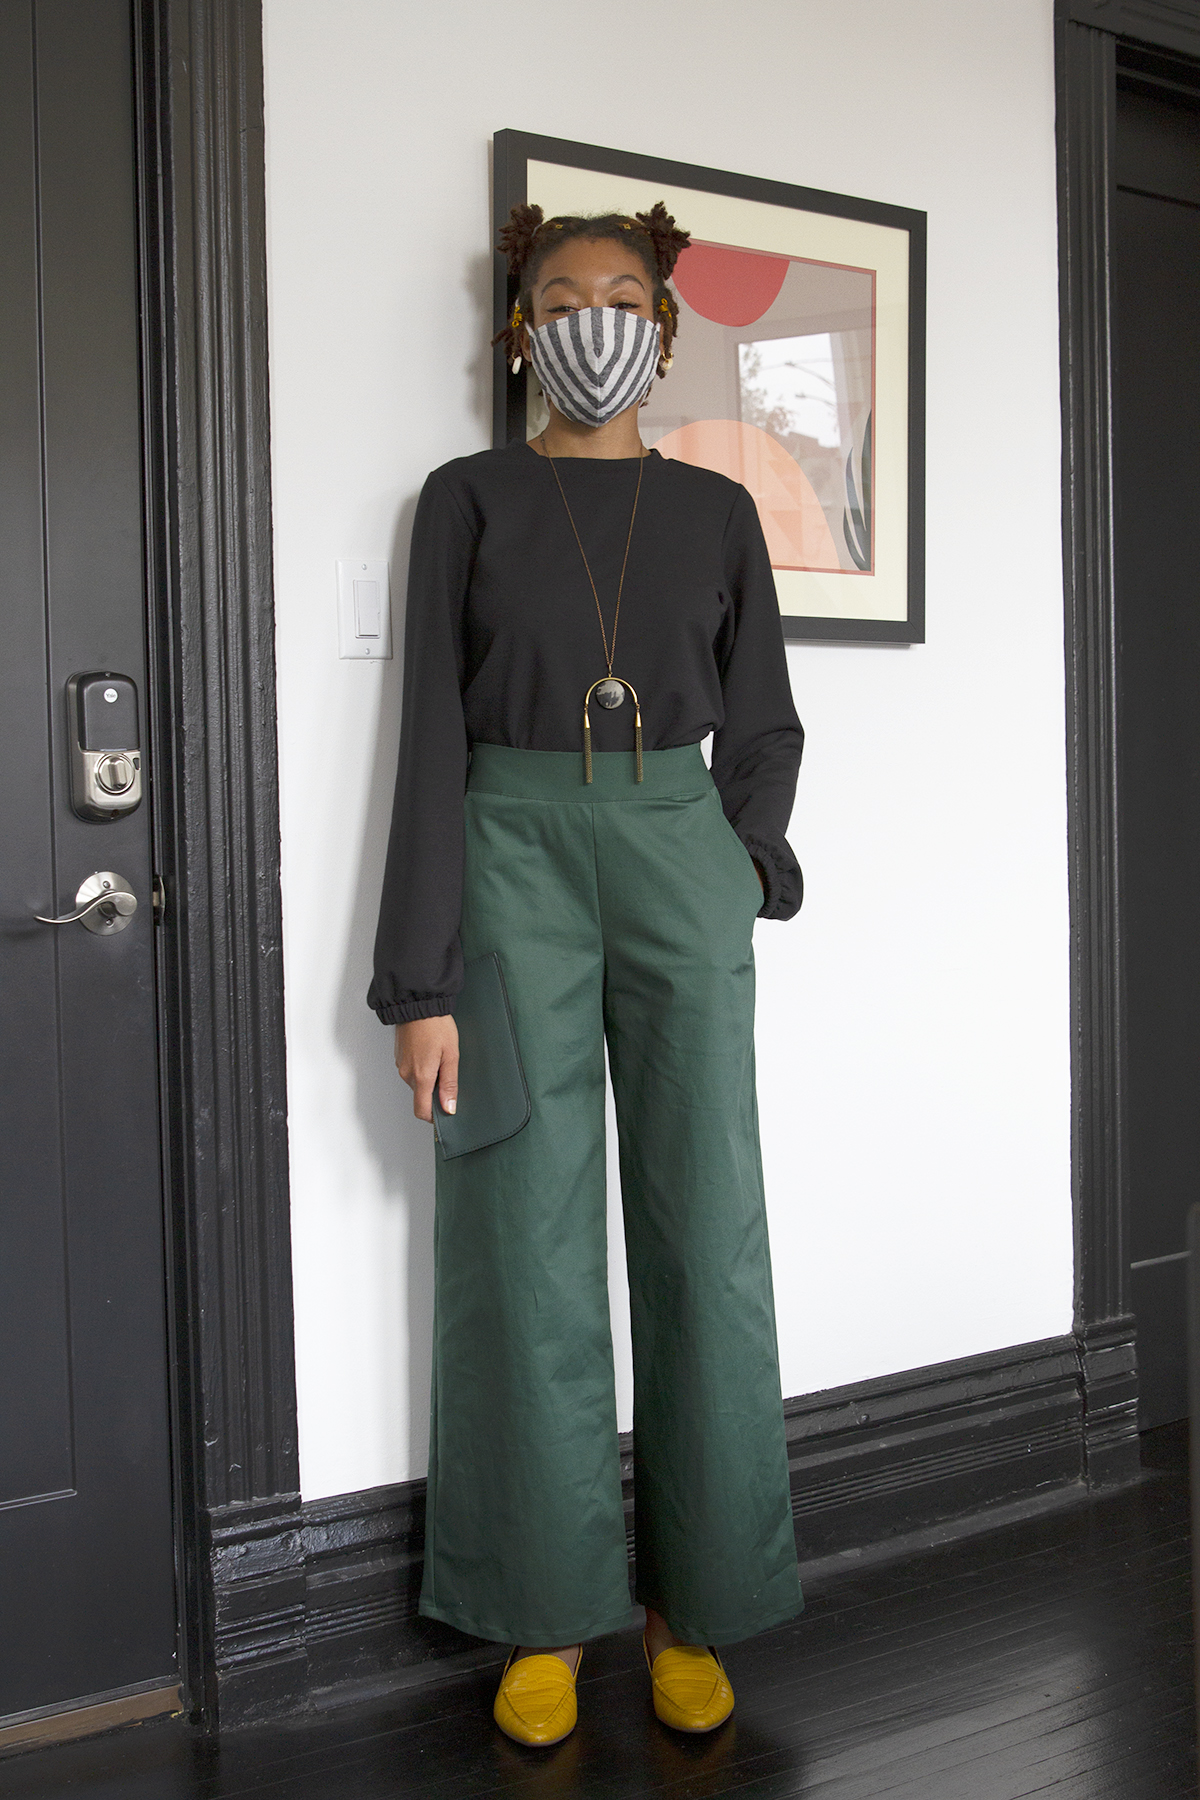 Melanie Sweatshirt, Luciana Trousers, Stripe Mask